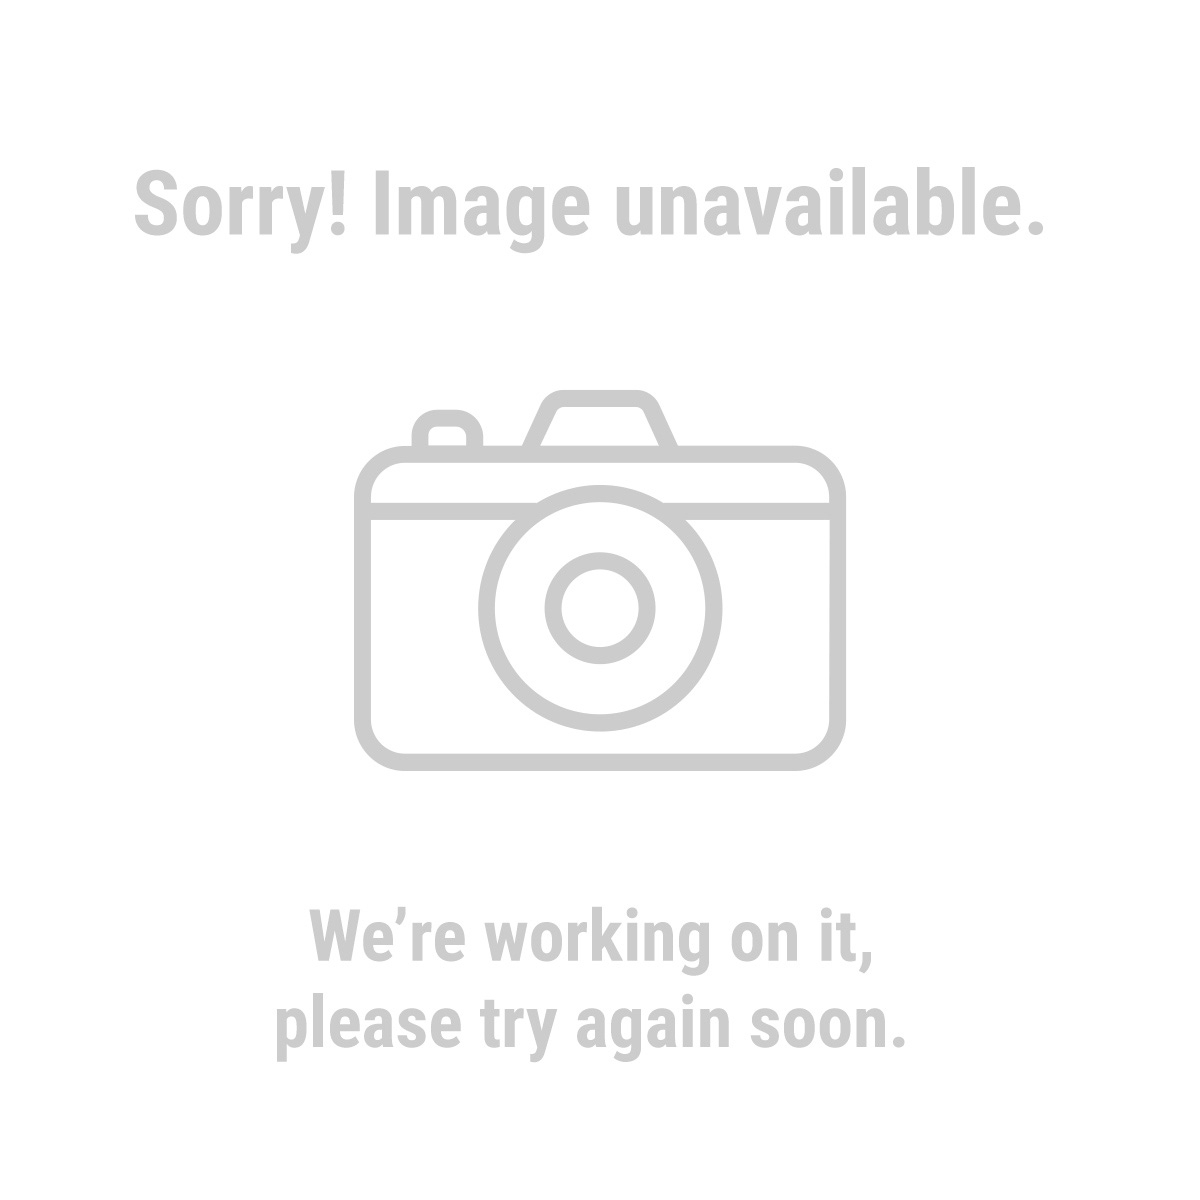 Pacific Hydrostar 68395 264 GPH Submersible Fountain Pump